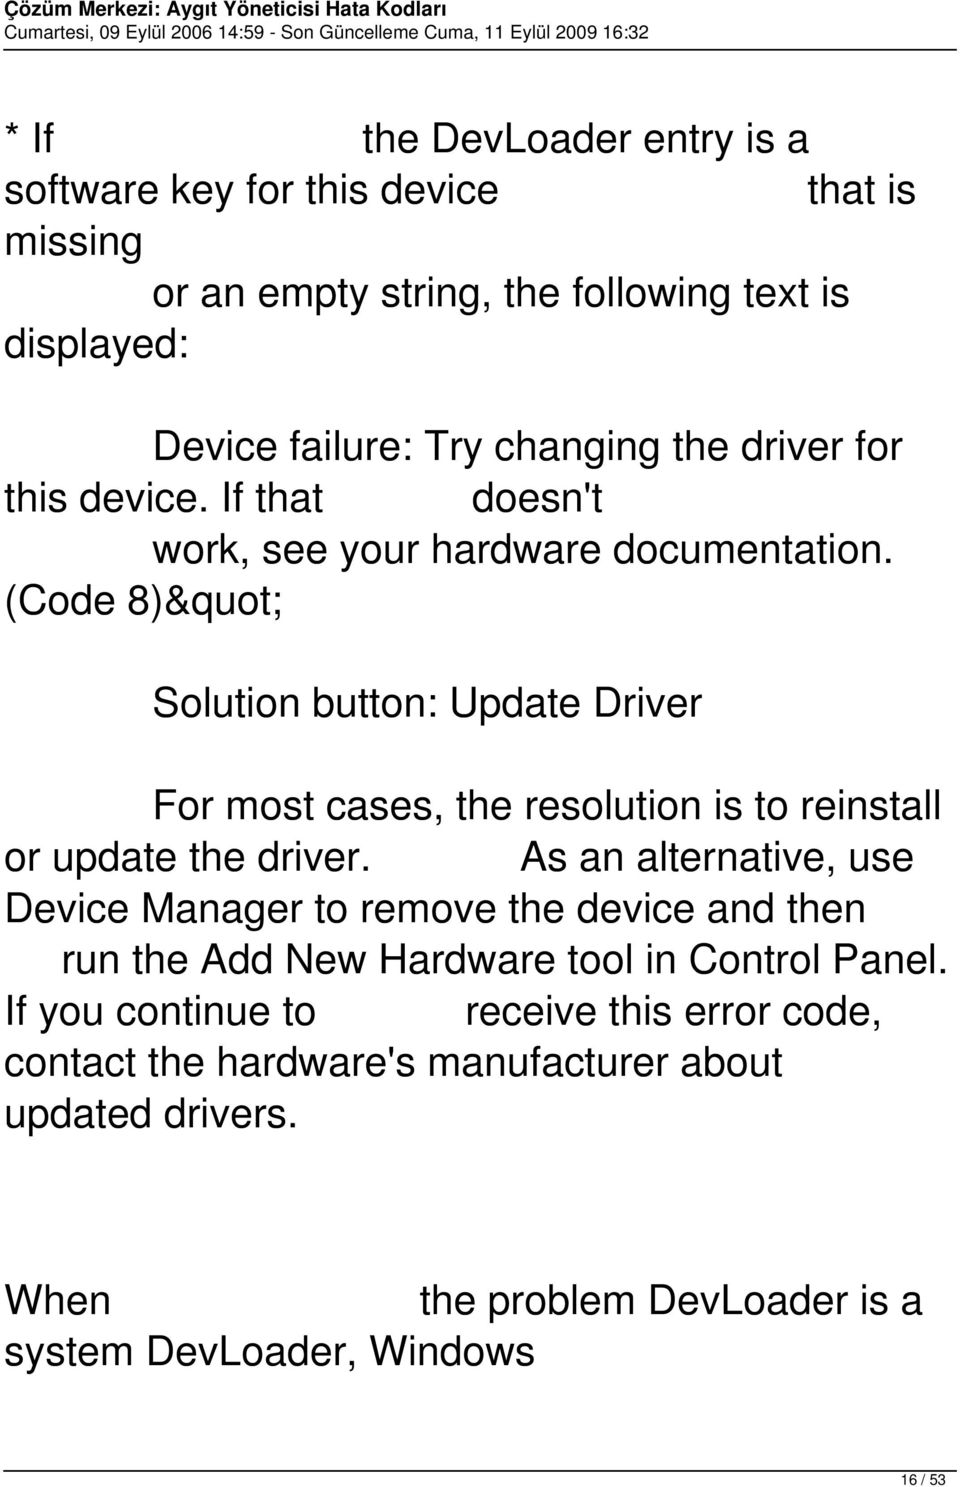 "(Code 8)"" Solution button: Update Driver For most cases, the resolution is to reinstall or update the driver."